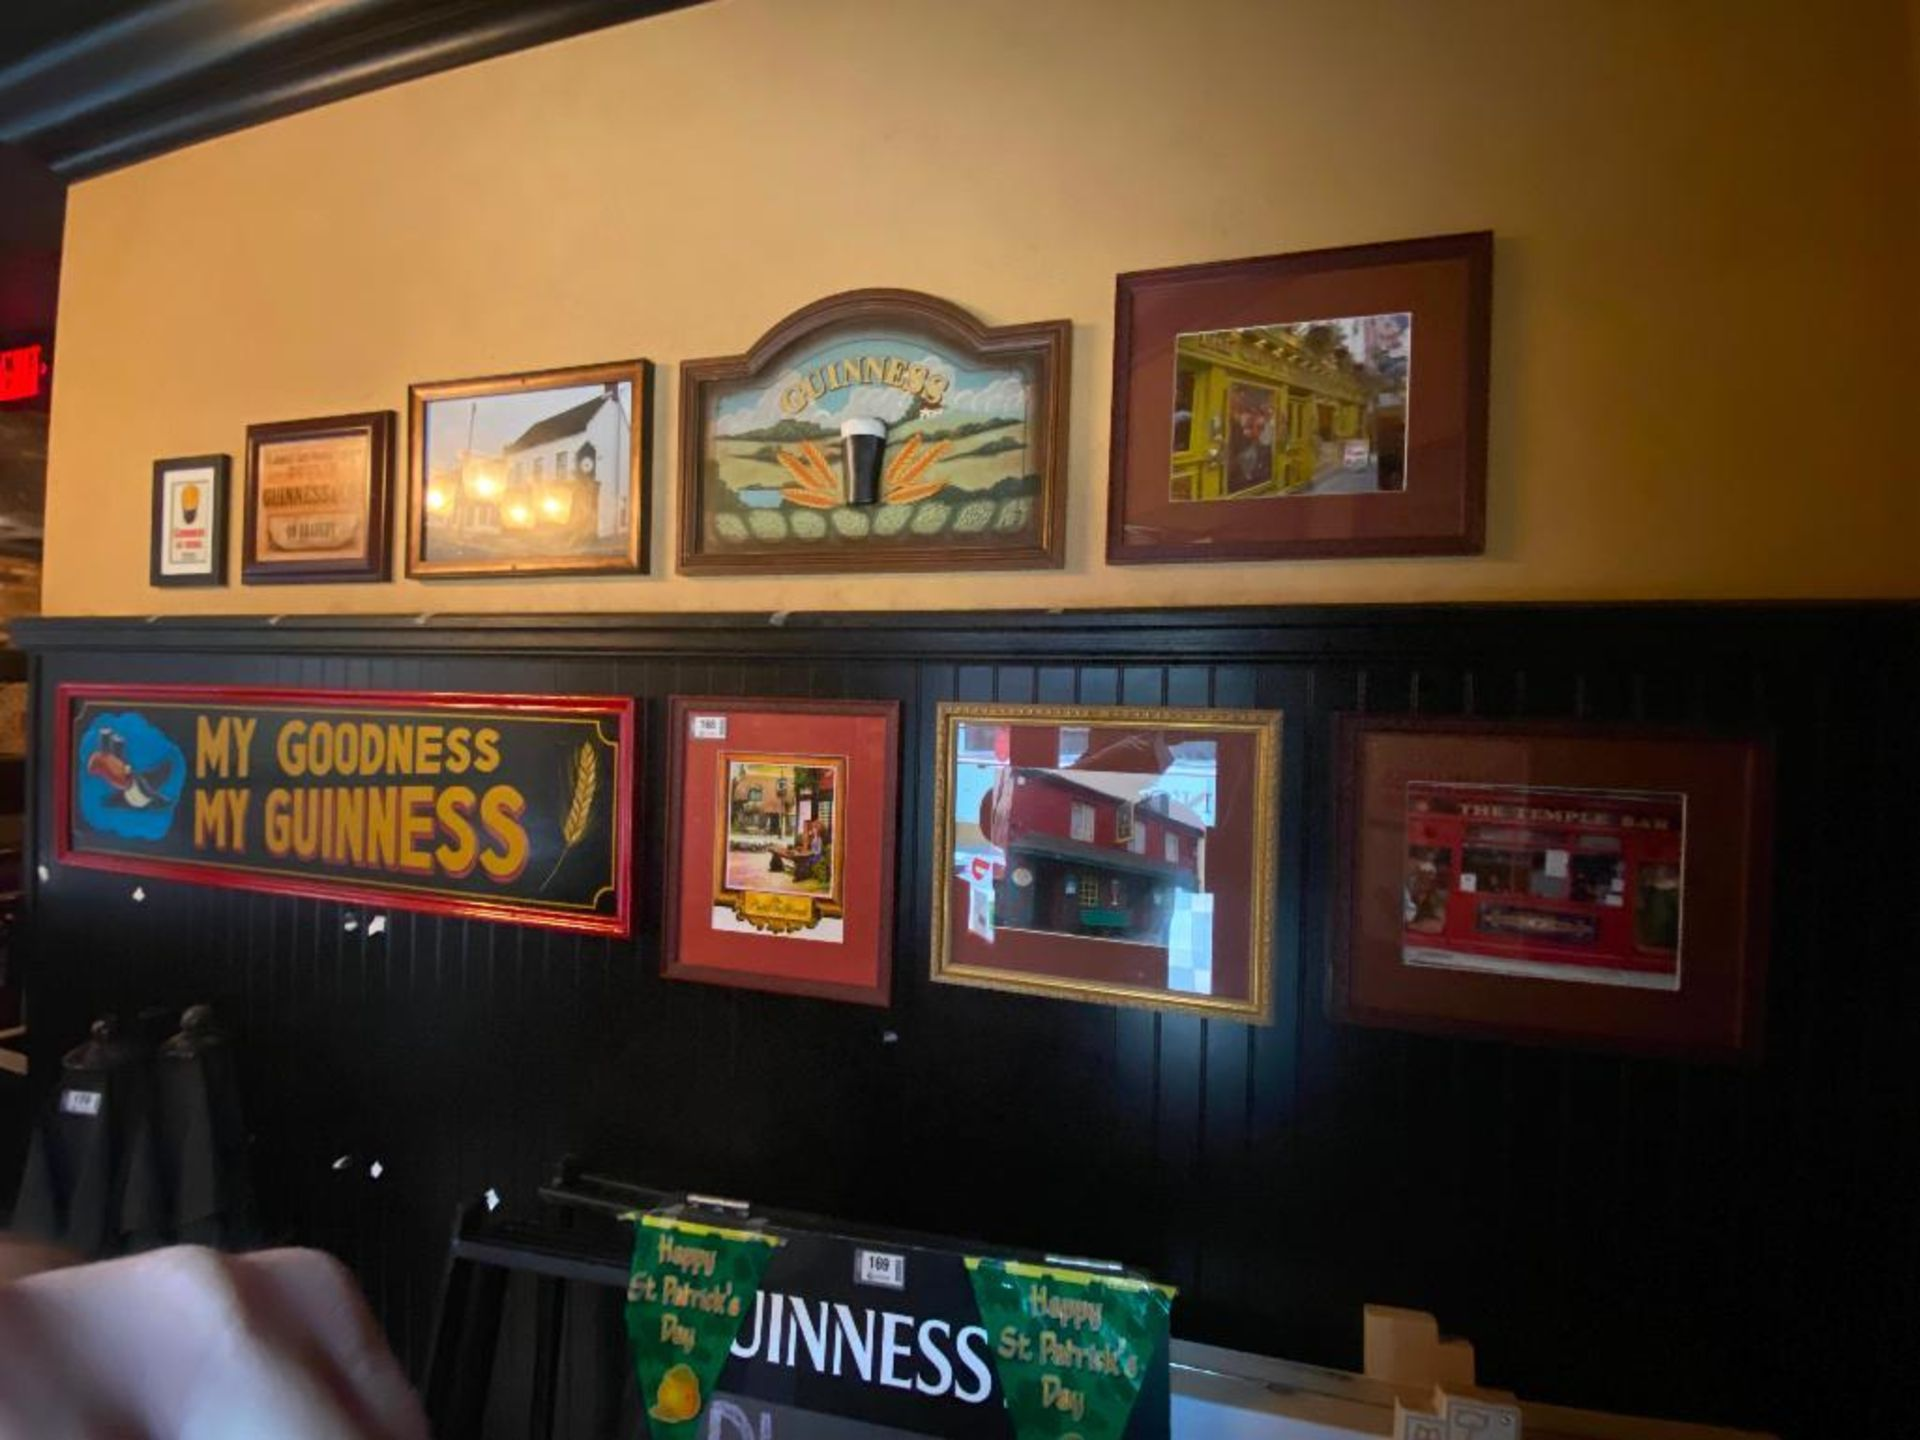 LOT OF (7) FRAMED MEMORABILIA PHOTOS & (2) WOODEN GUINNESS PLAQUES - NOTE REQUIRES REMOVAL FROM WALL - Image 2 of 5